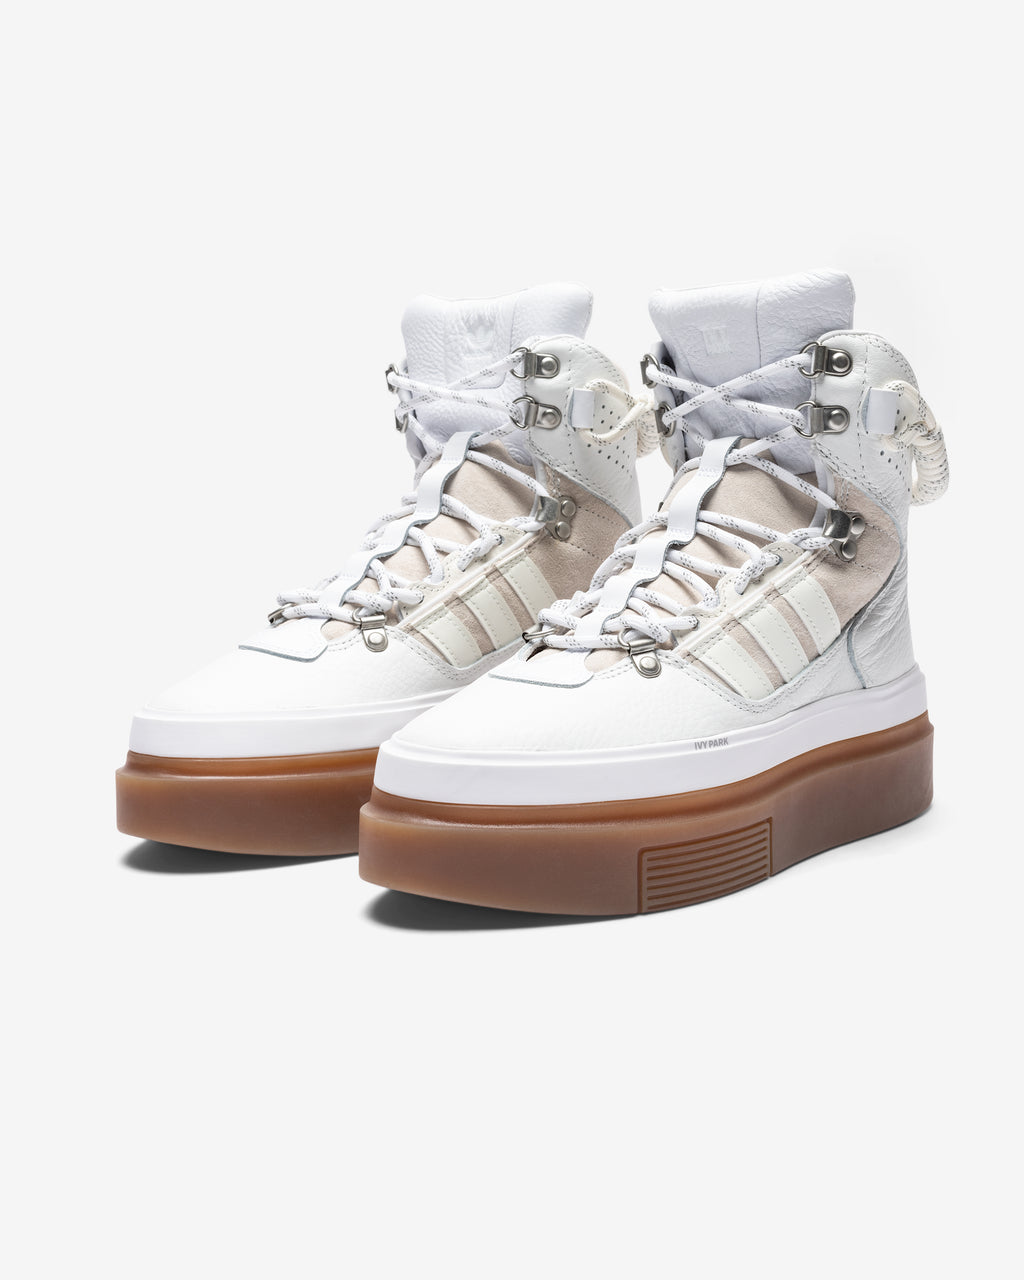 ADIDAS X IVY PARK WOMEN'S SUPER SLEEK BOOT - FTWWHT/ CWHITE